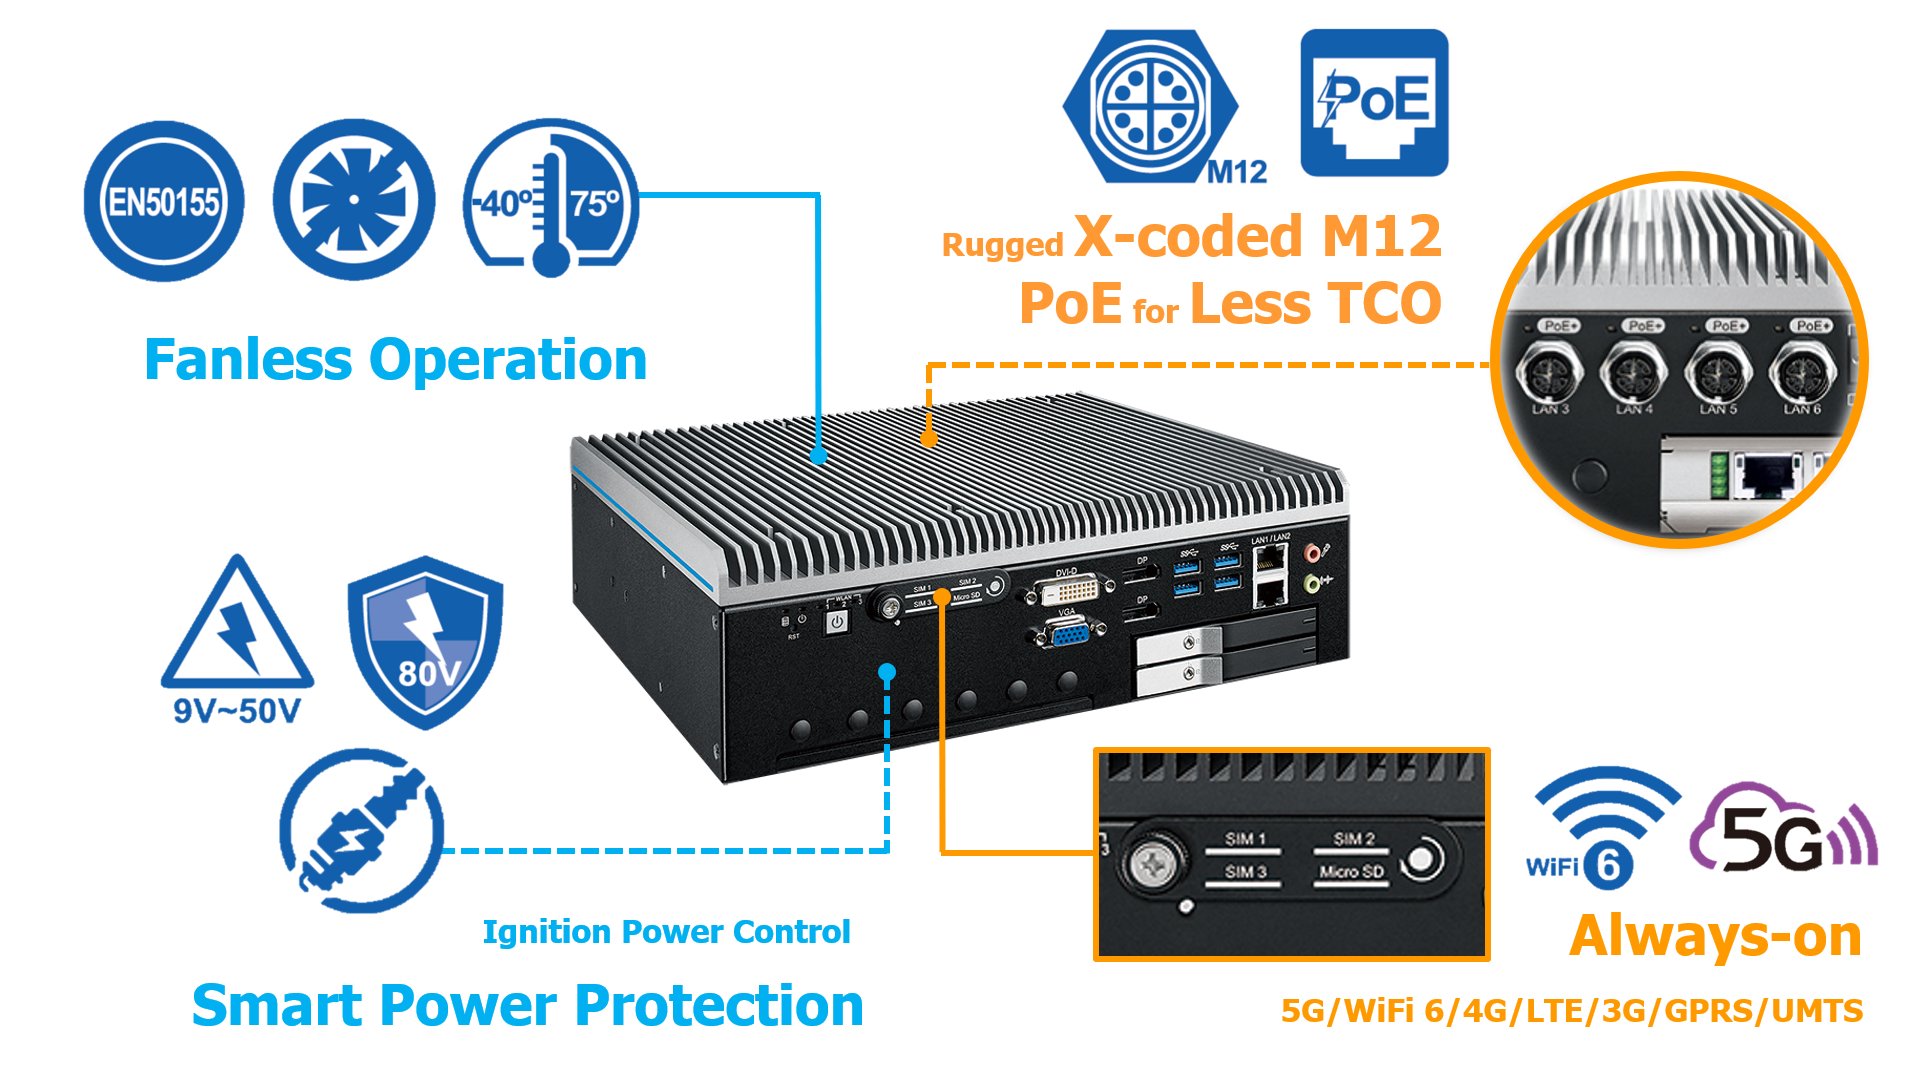 Vecow ECX-2200/2100 features rugged reliability